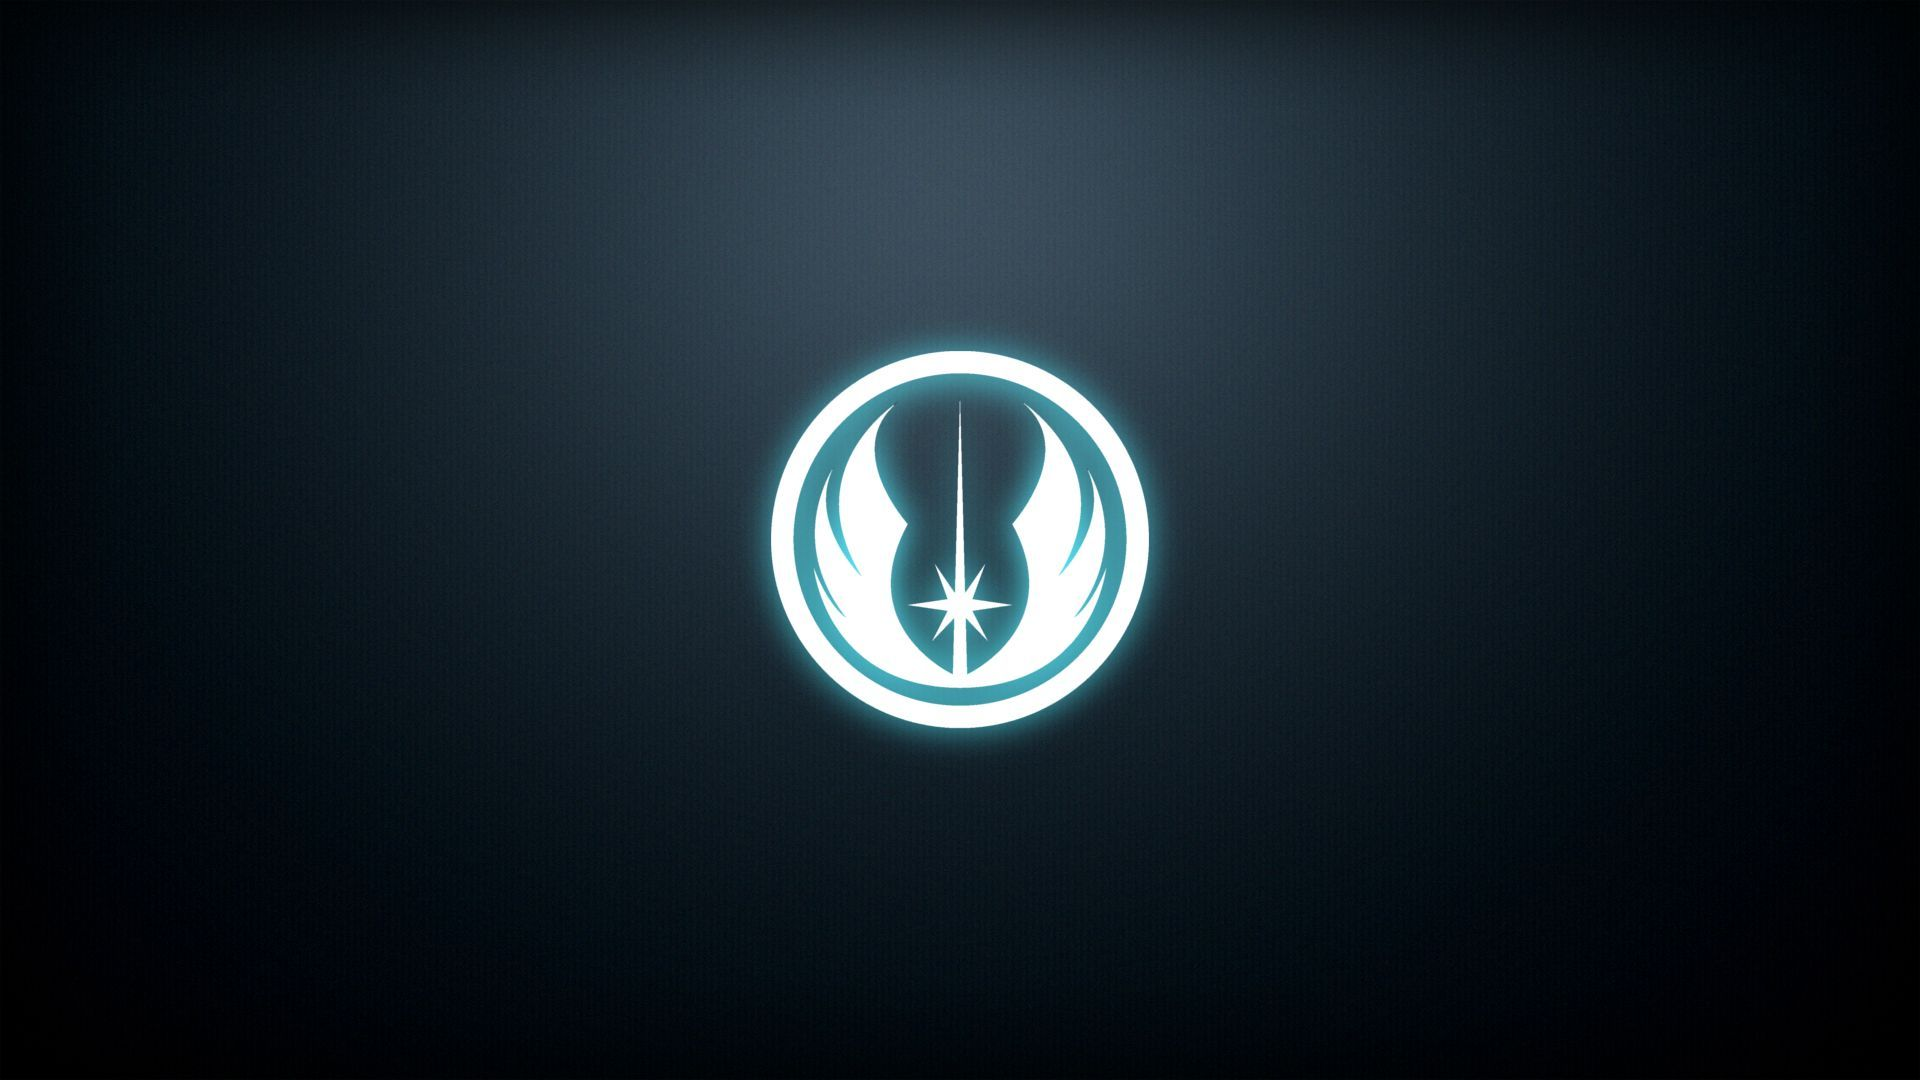 1920 X 1080 Jedi Order Star Wars Wallpaper Jedi Symbol Iphone Wallpaper Stars